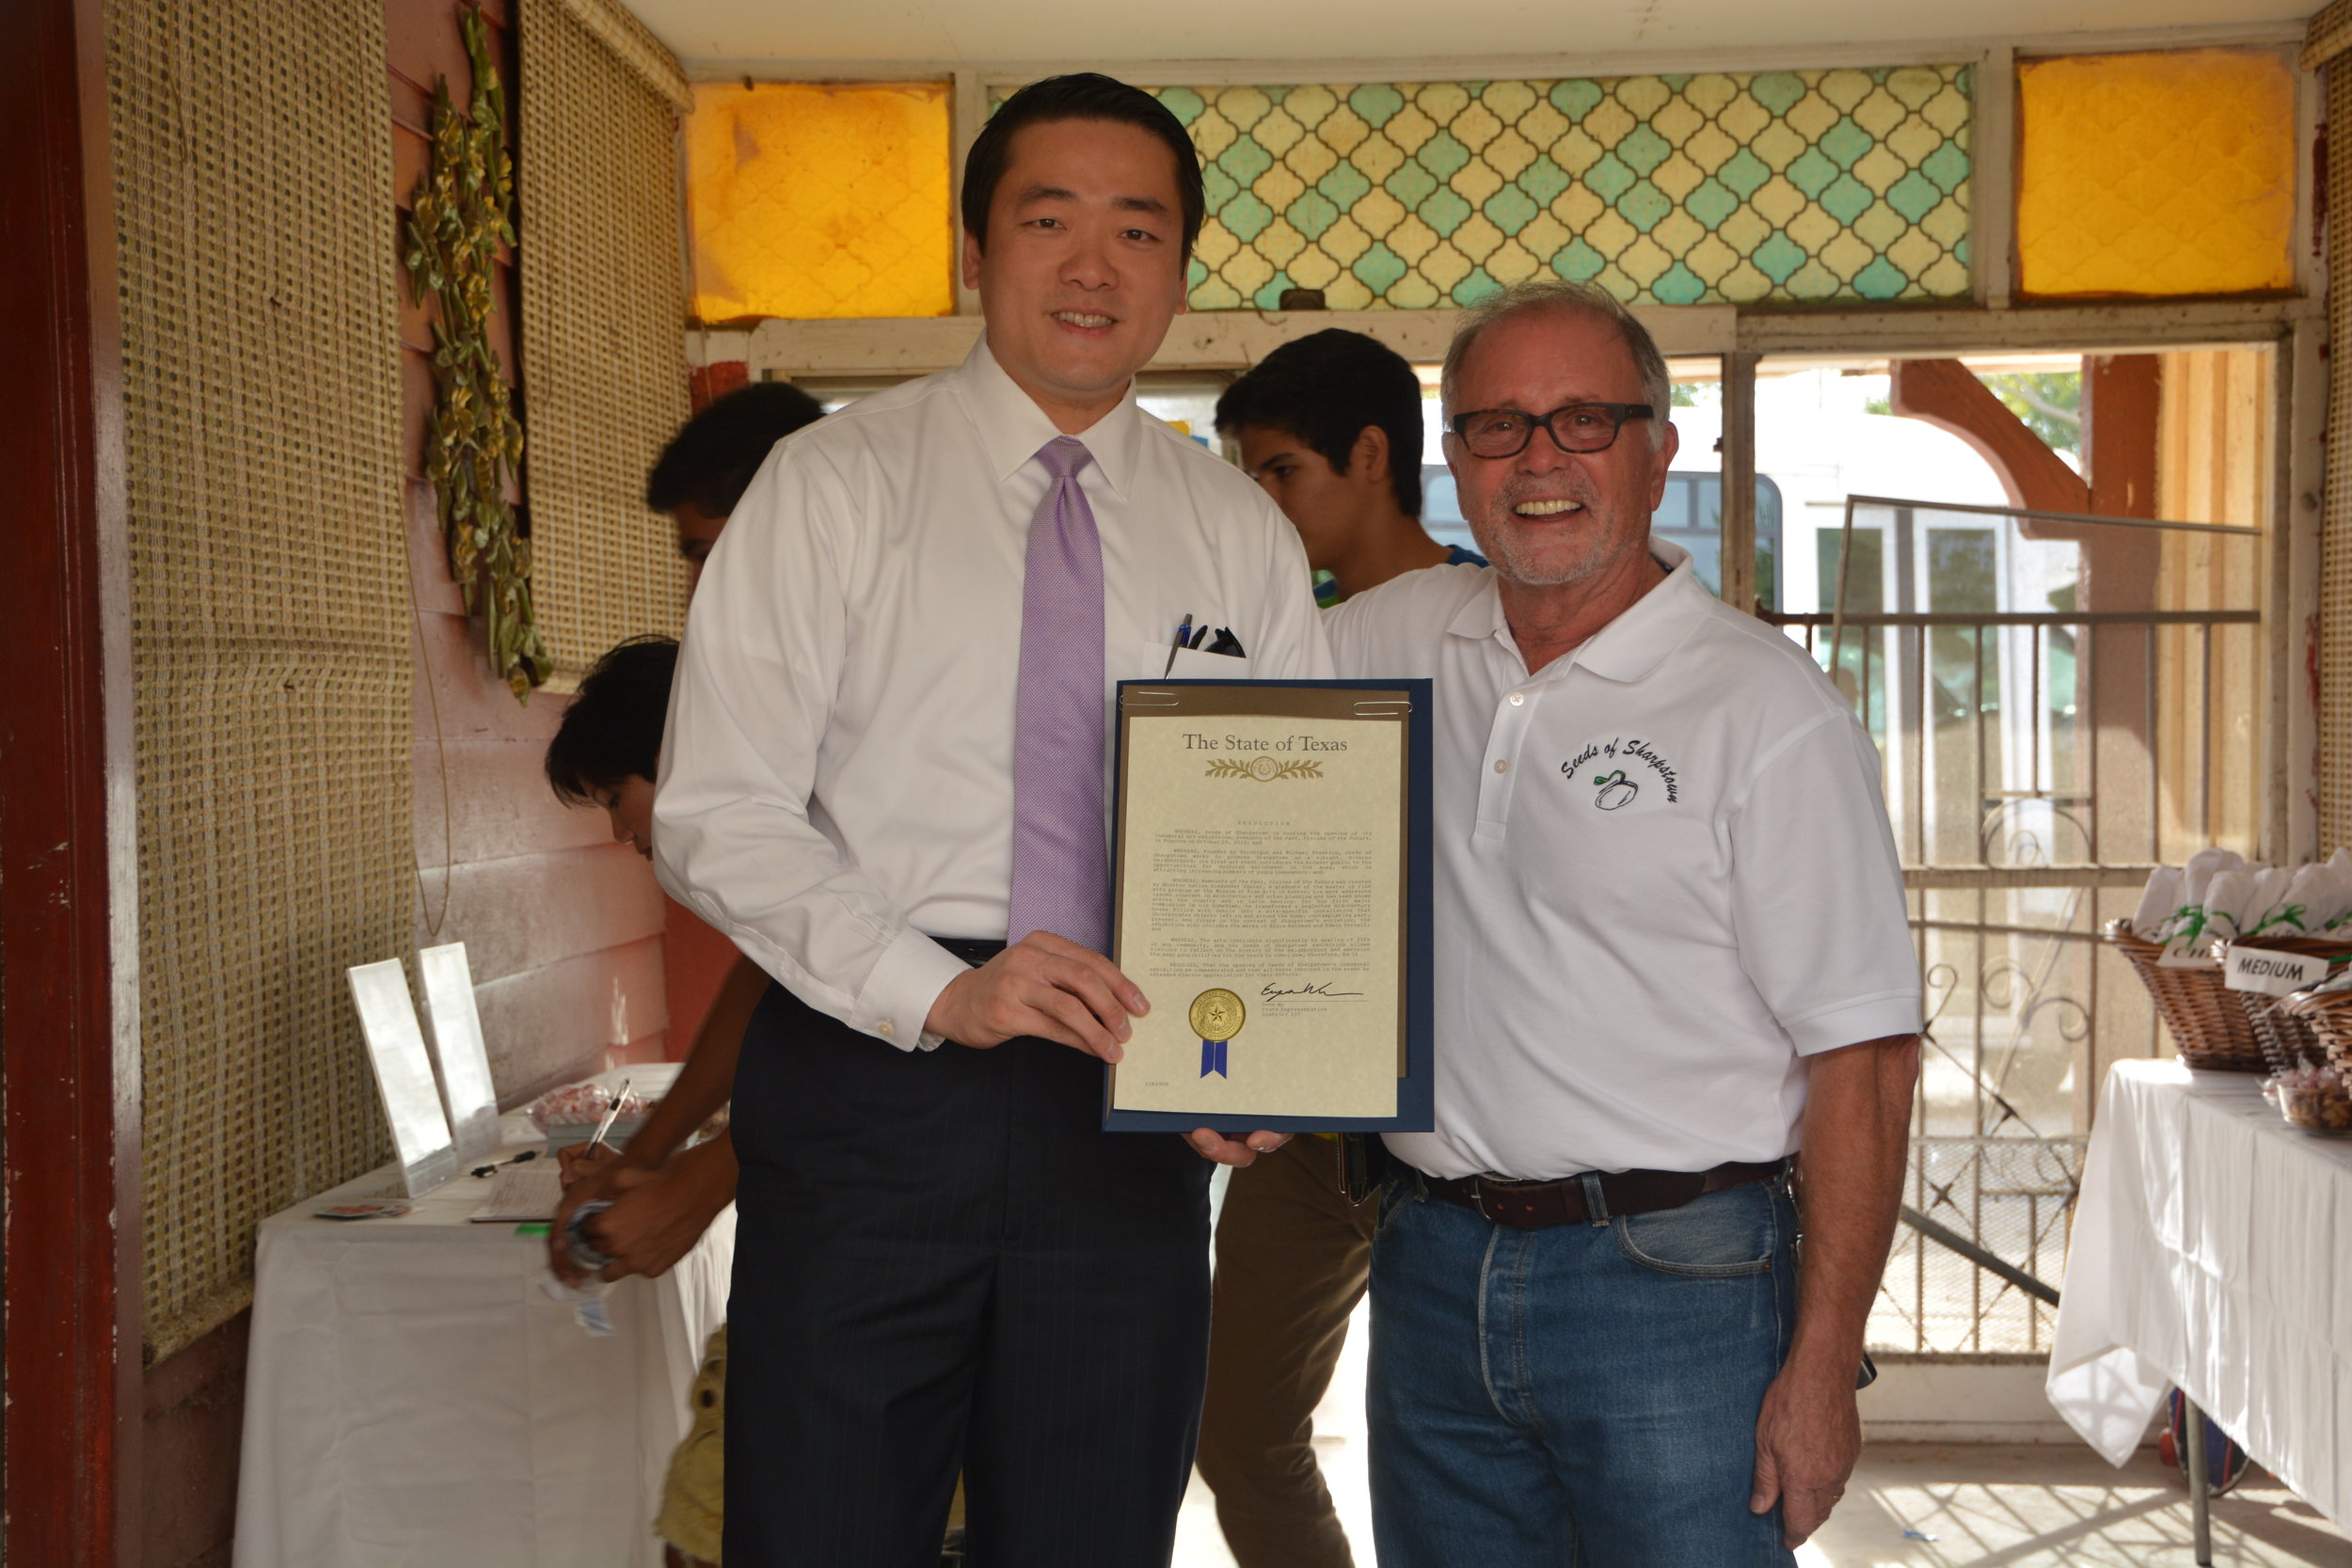 Gene Wu presents Seeds of Sharpstpown's Michael Prentice with a proclamation from the State of Texas House during the Remnants of the Past, Visions of the Future reception.